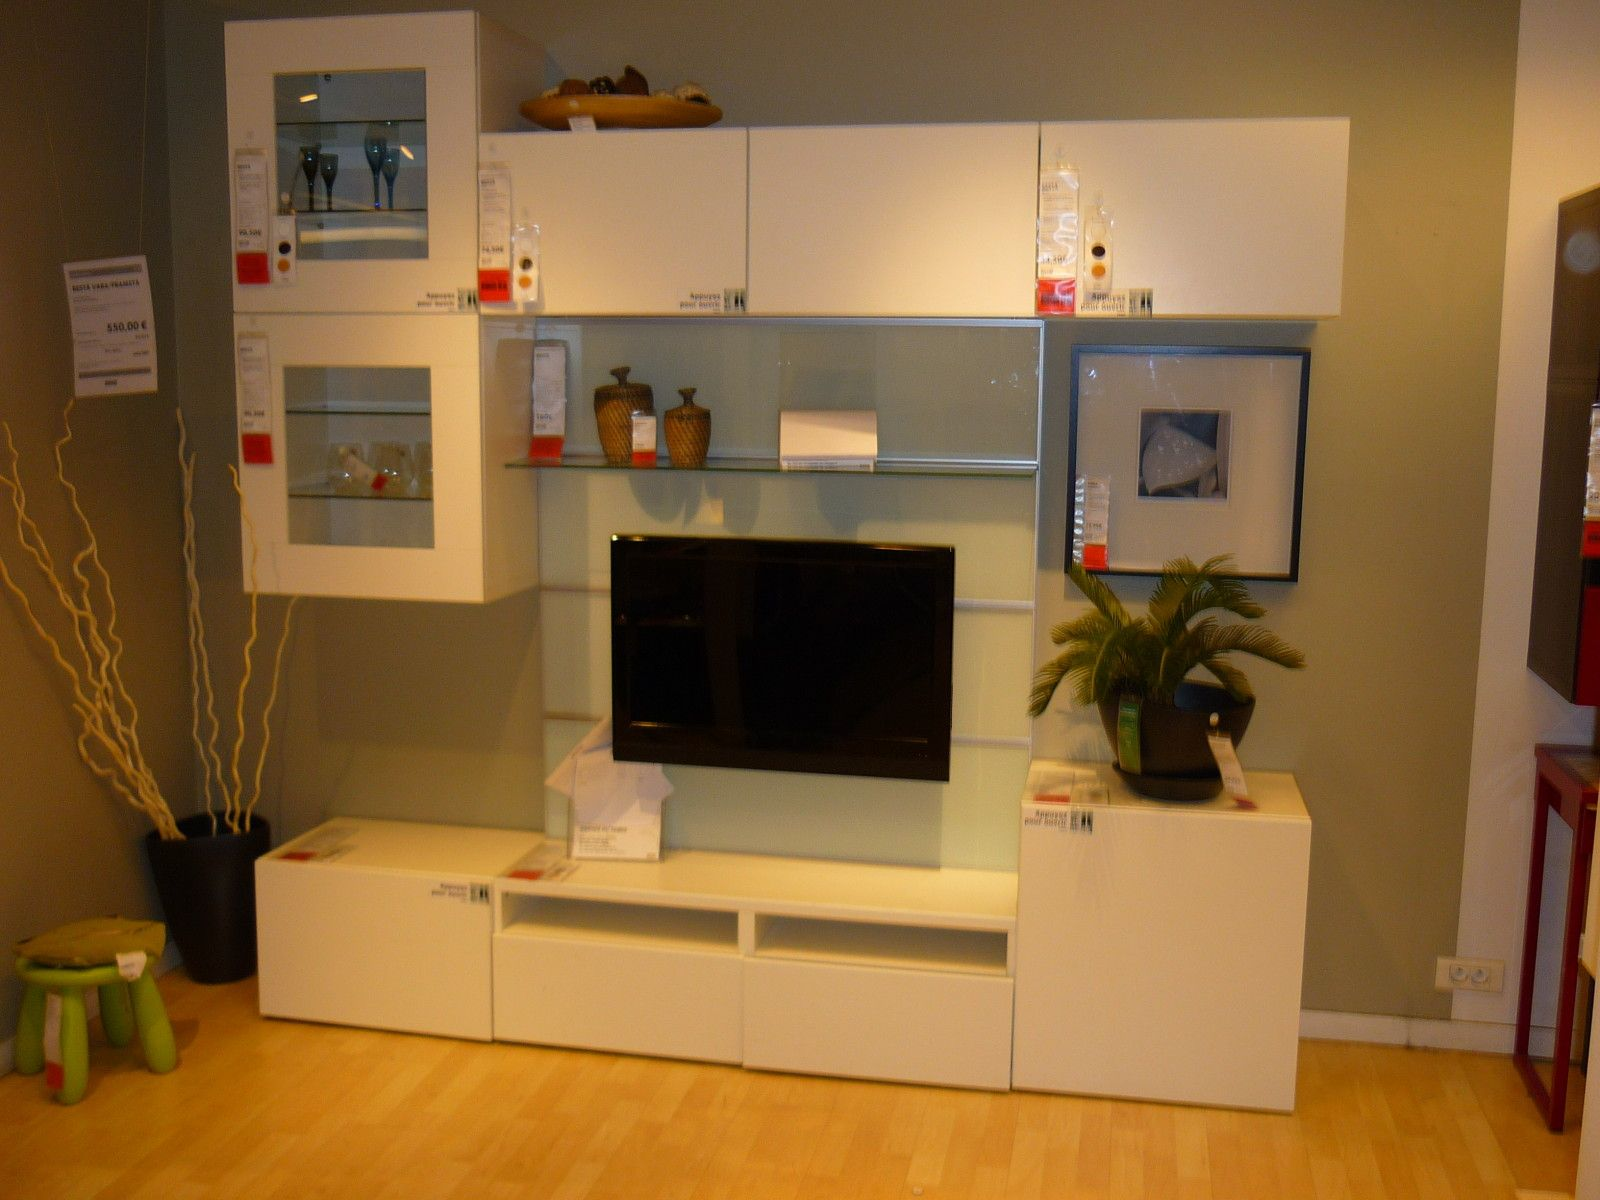 meuble tv expedit trendy meuble tv lumineux blanc laque a tiroirs orleans u ikea photo meuble. Black Bedroom Furniture Sets. Home Design Ideas